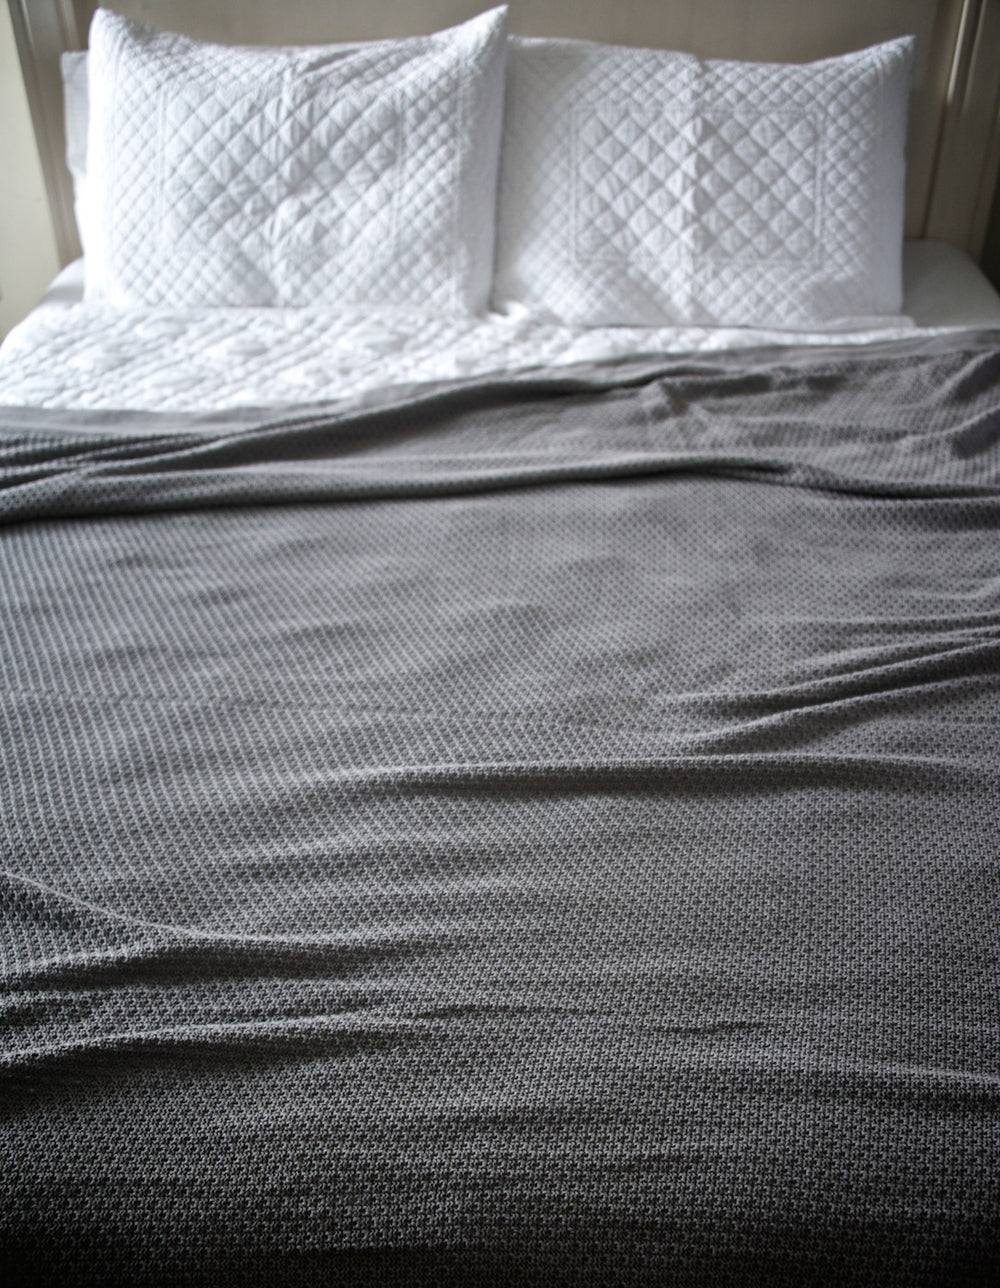 Apheleia, Pure Cotton Charcoal Blanket  102X92 Inches